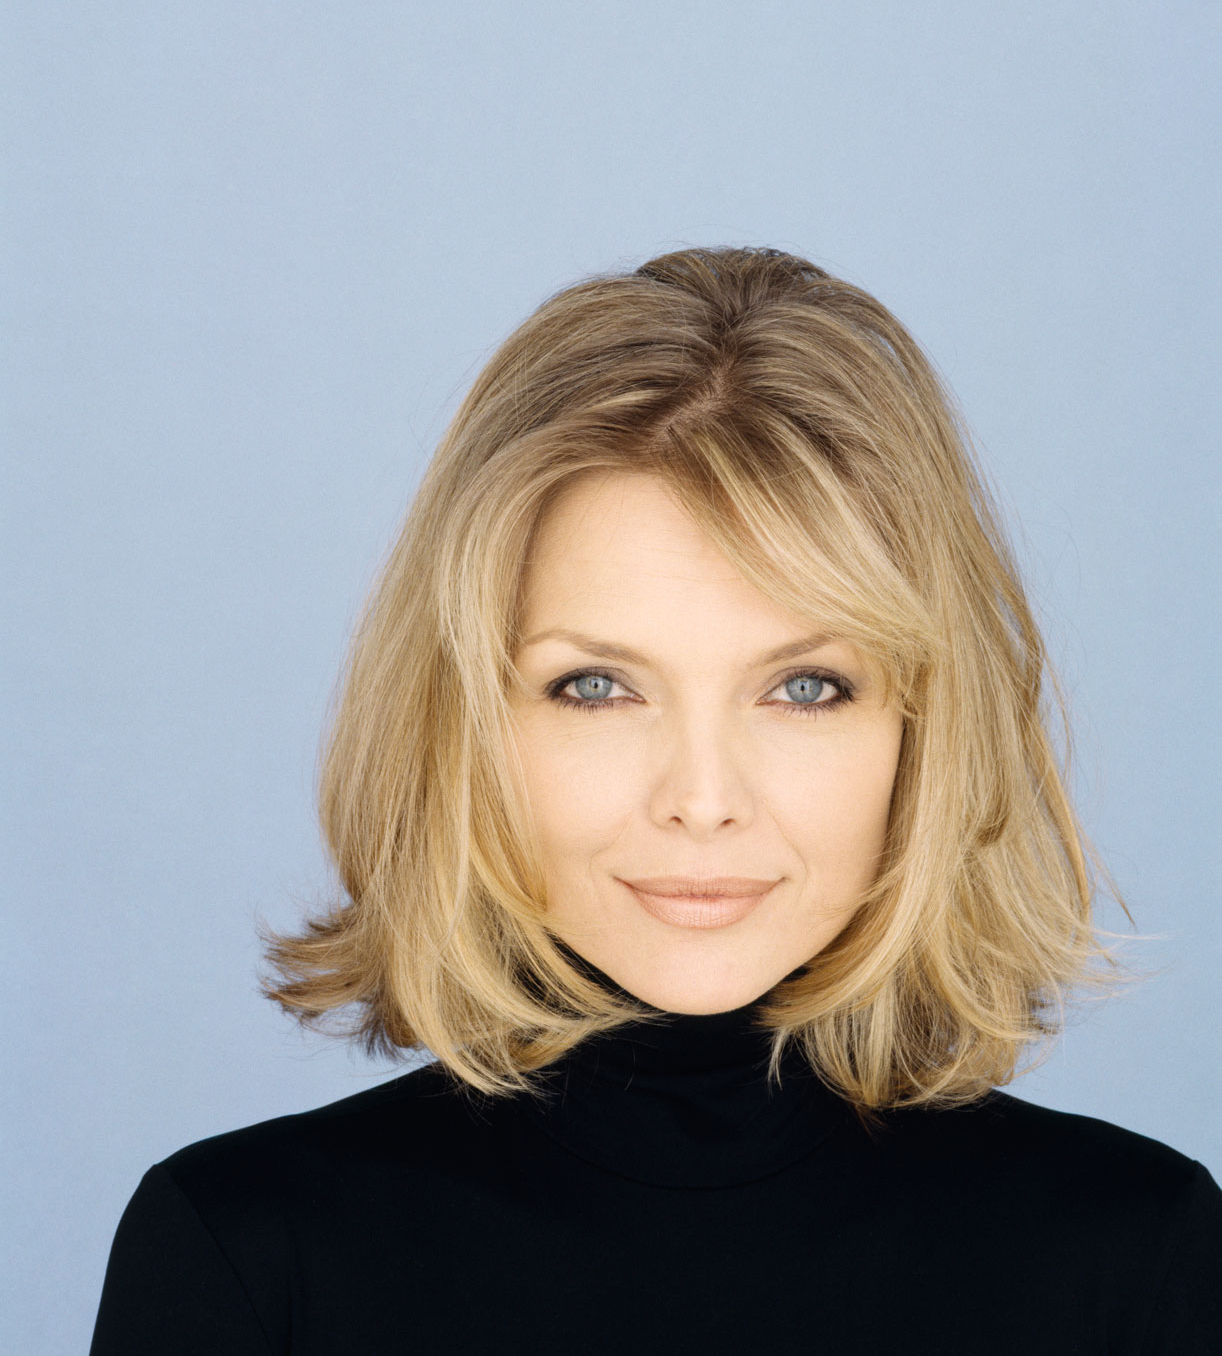 Michelle pfeiffer photo shoot Michelle Pfeiffer stuns for Interview shoot Daily Mail Online